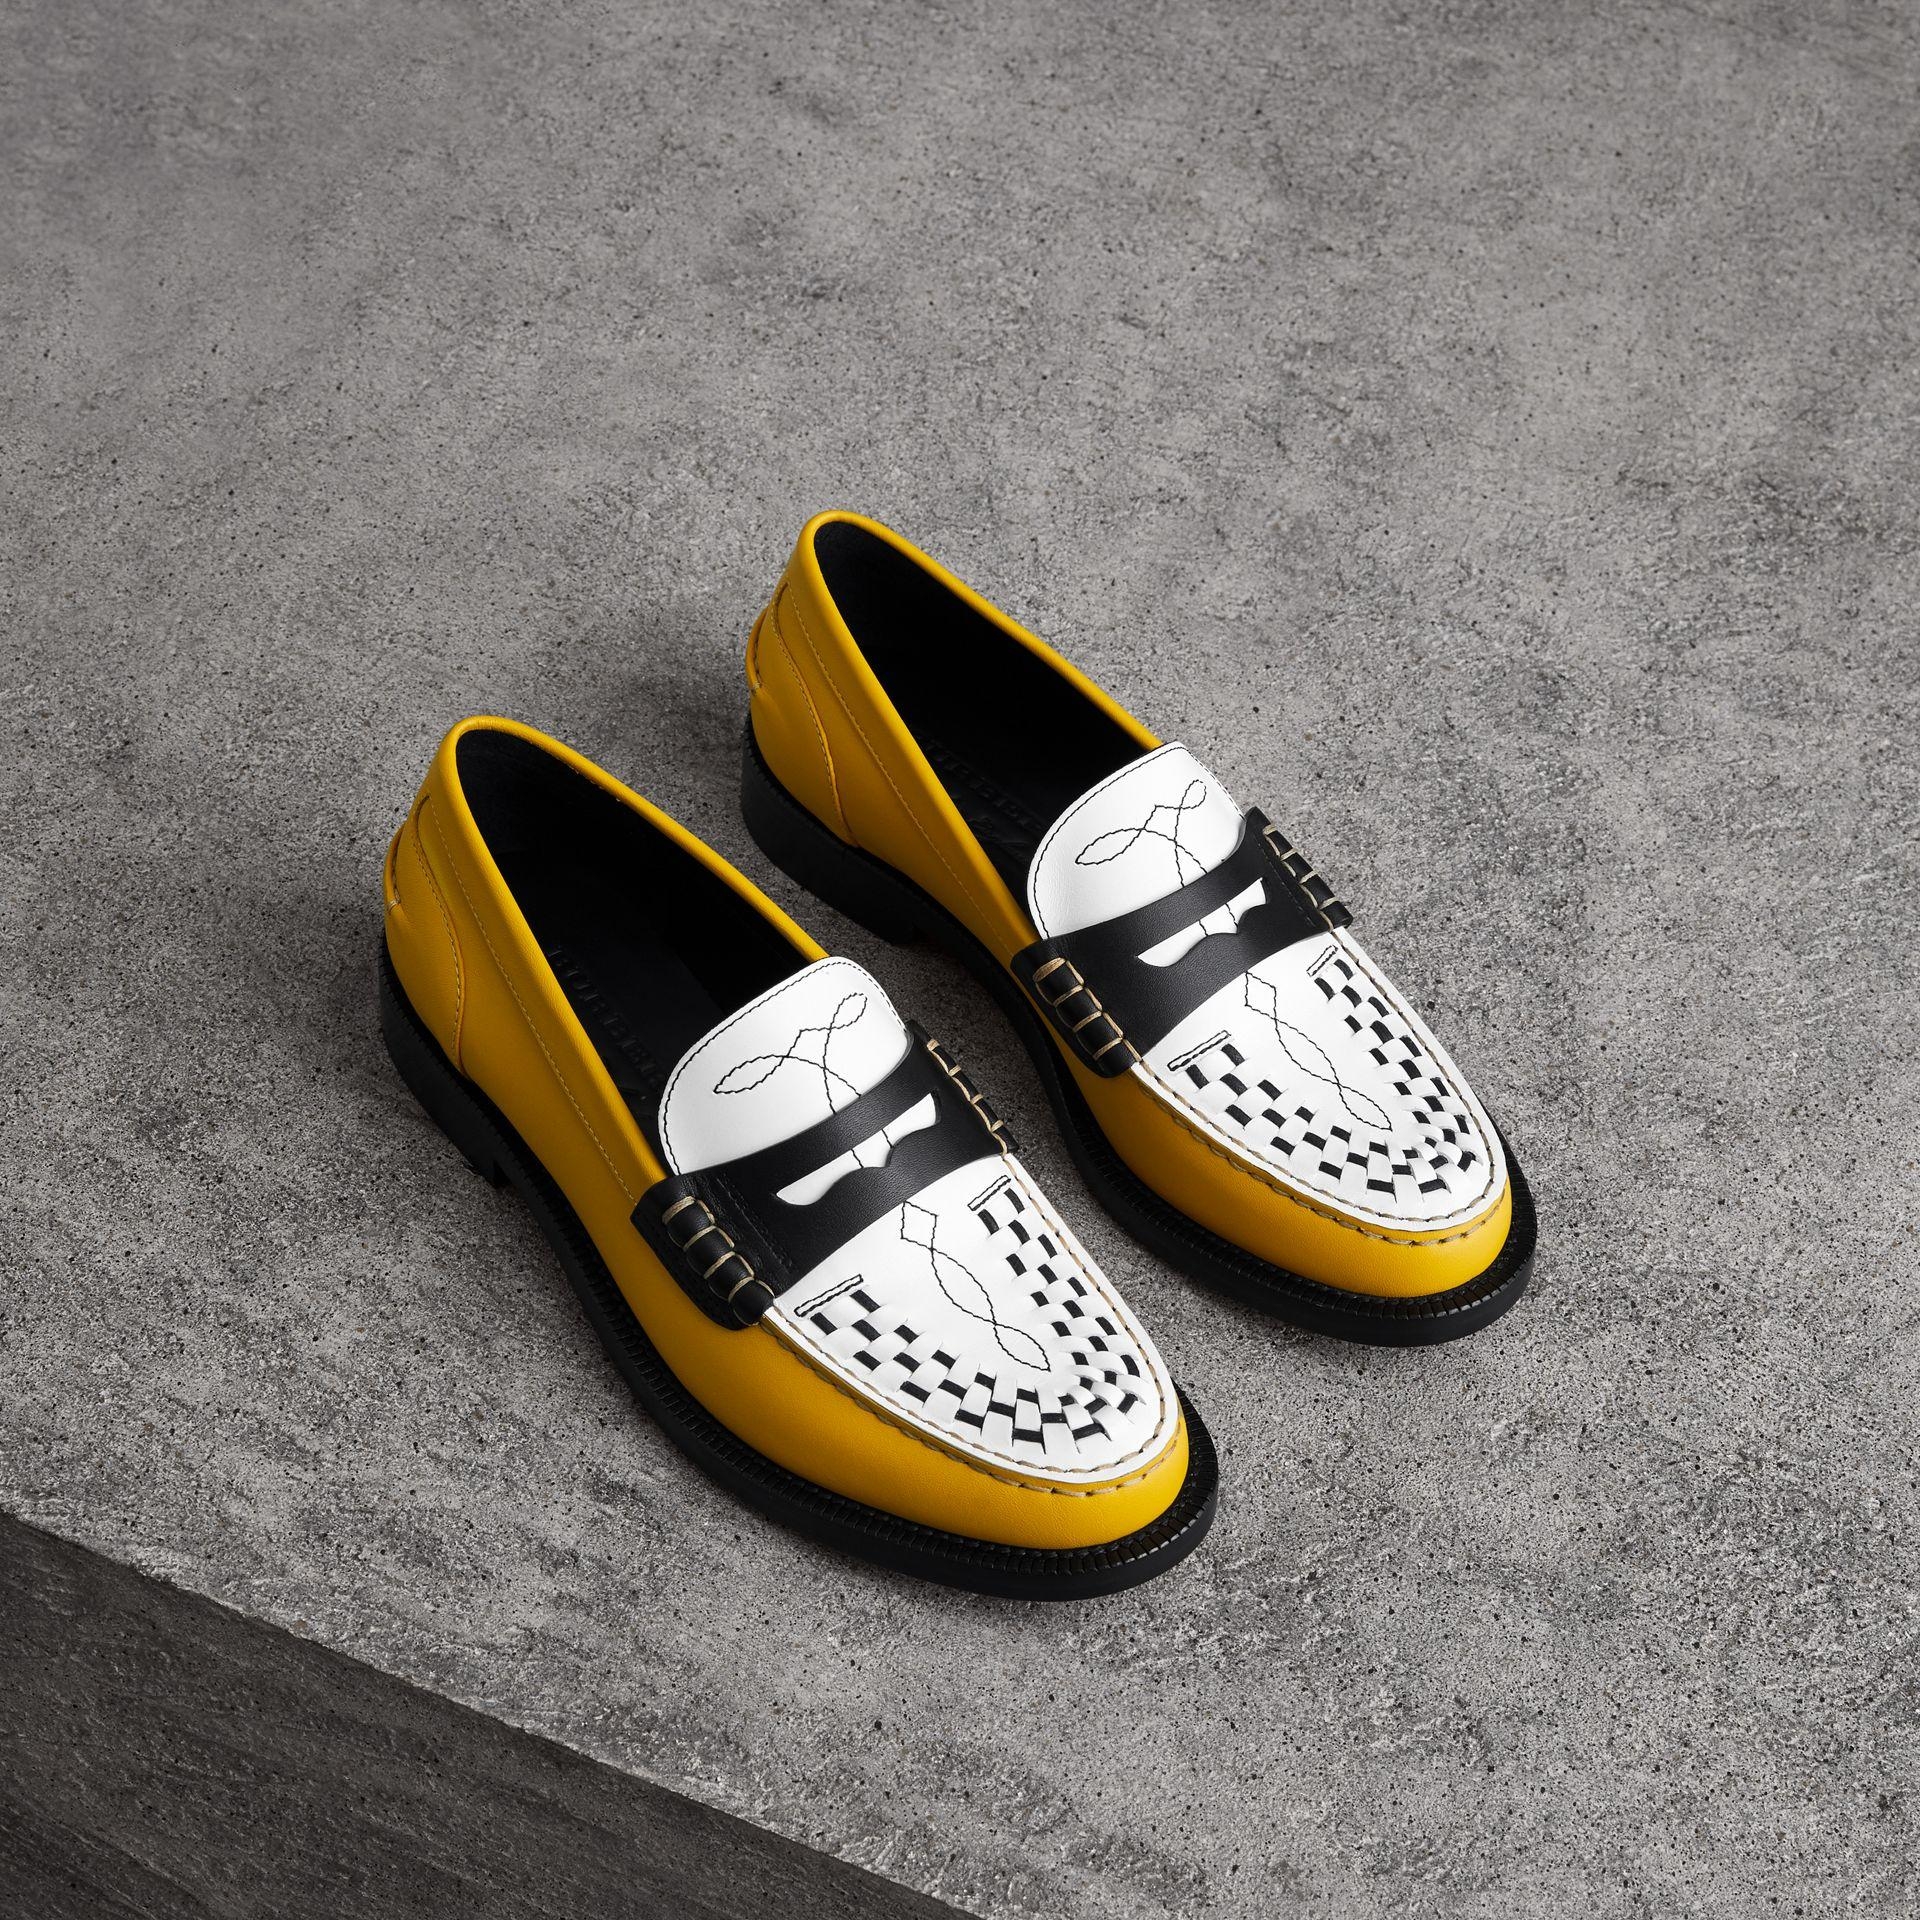 Burberry Woven-toe Leather Loafers In Saffron Yellow